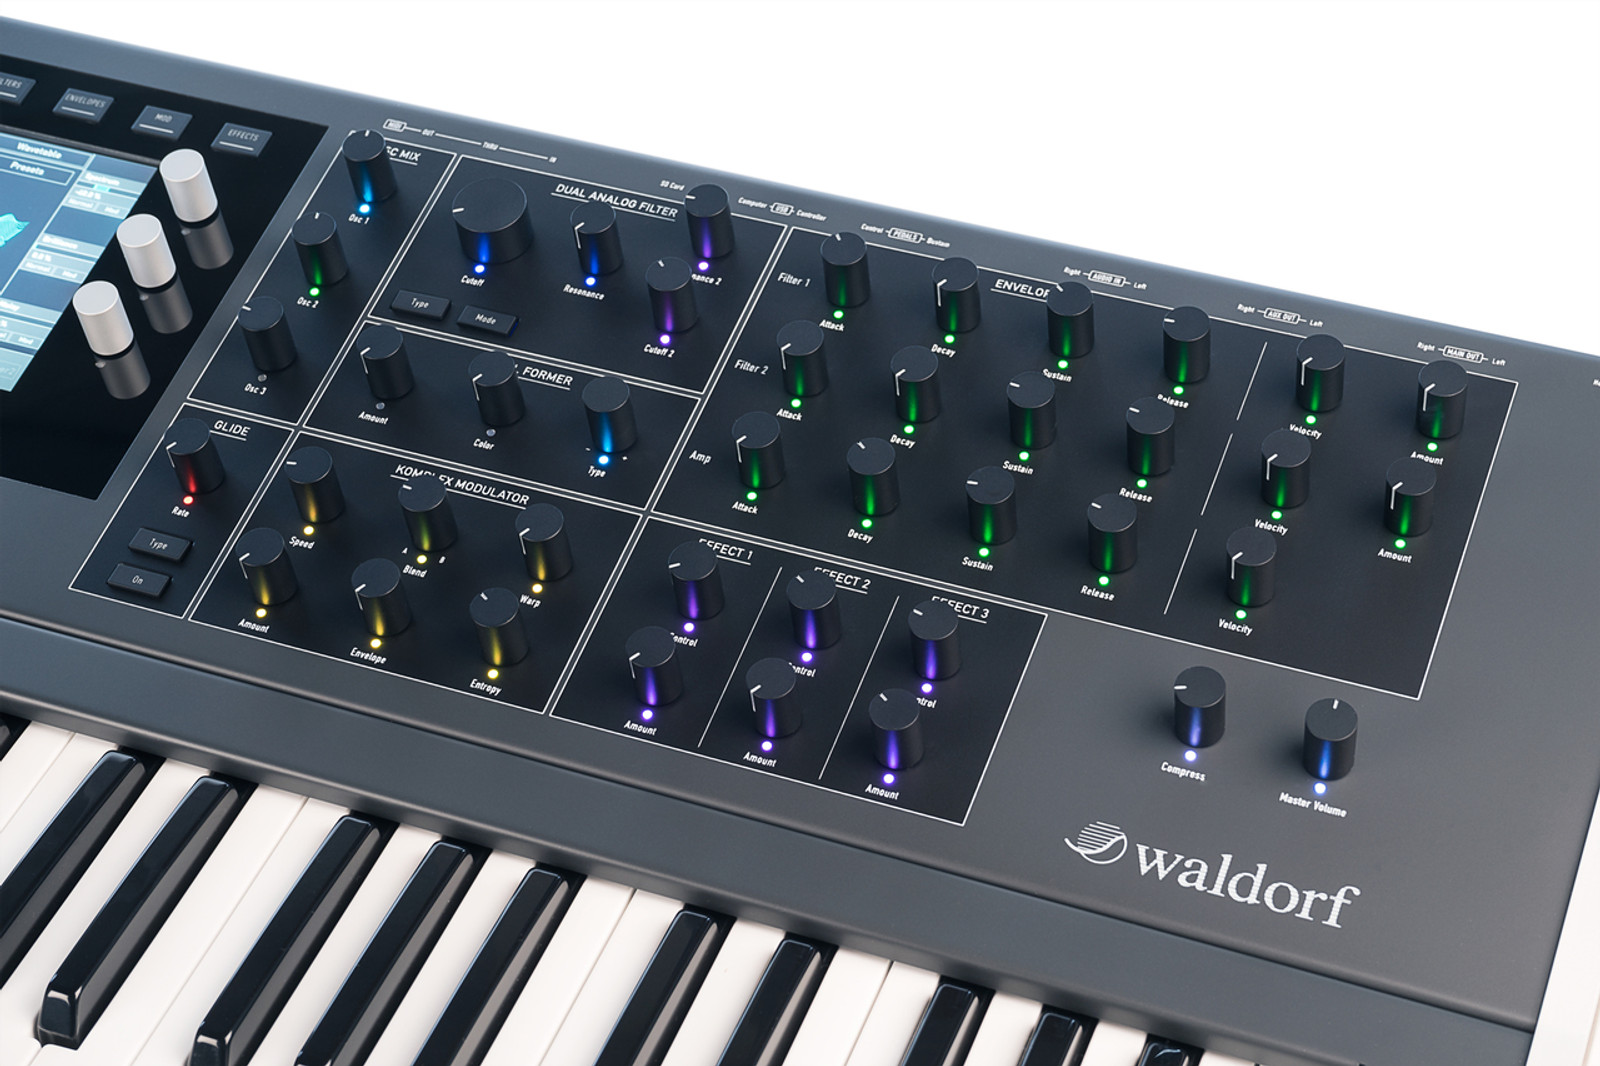 WALDORF QUANTUM Synthesizer